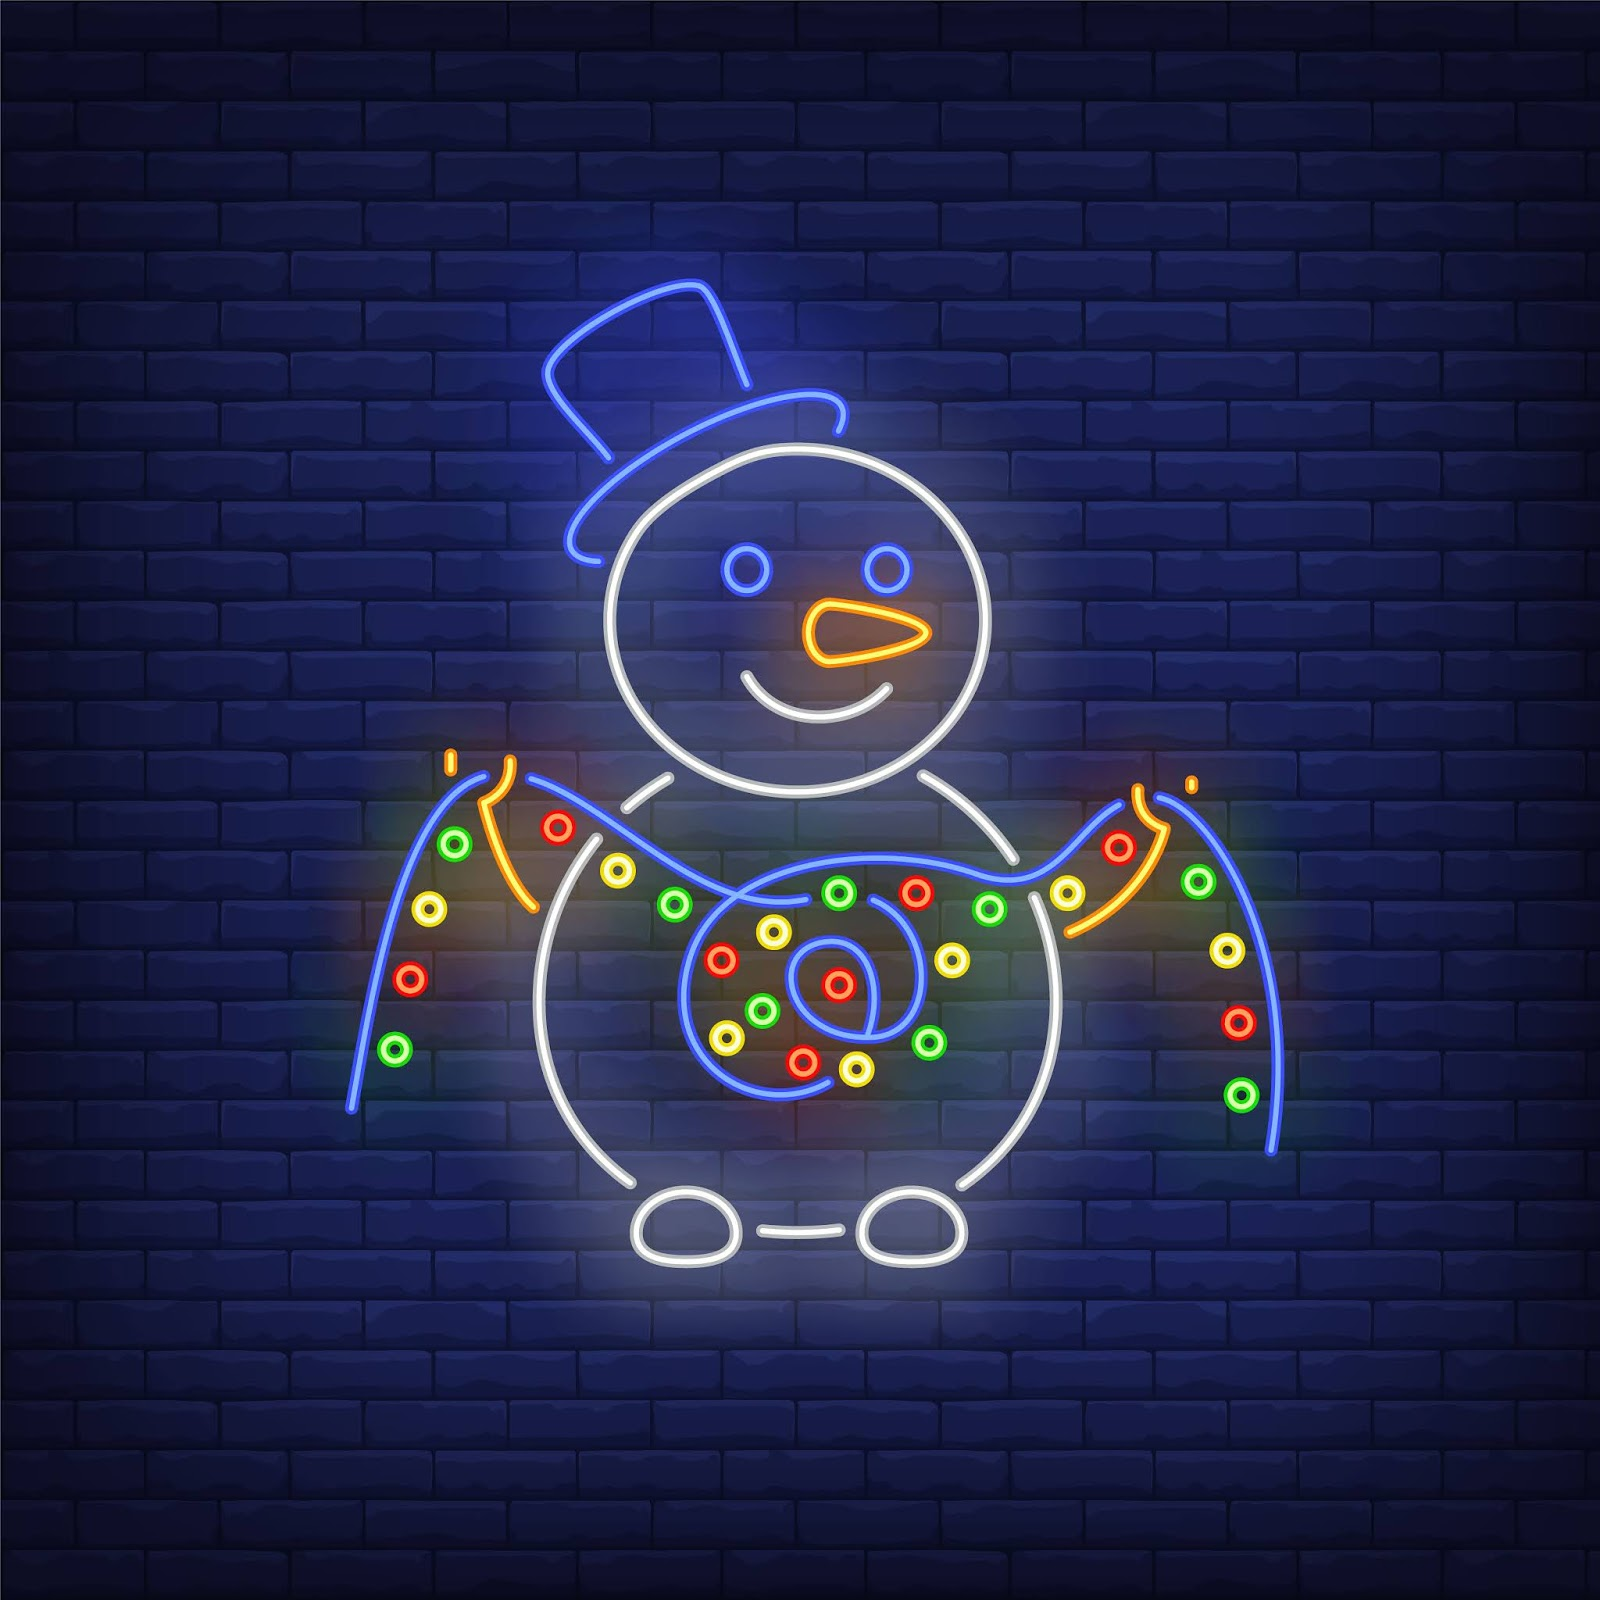 Snowman Wearing Topper Hat Holding Lights Garland Neon Style Free Download Vector CDR, AI, EPS and PNG Formats